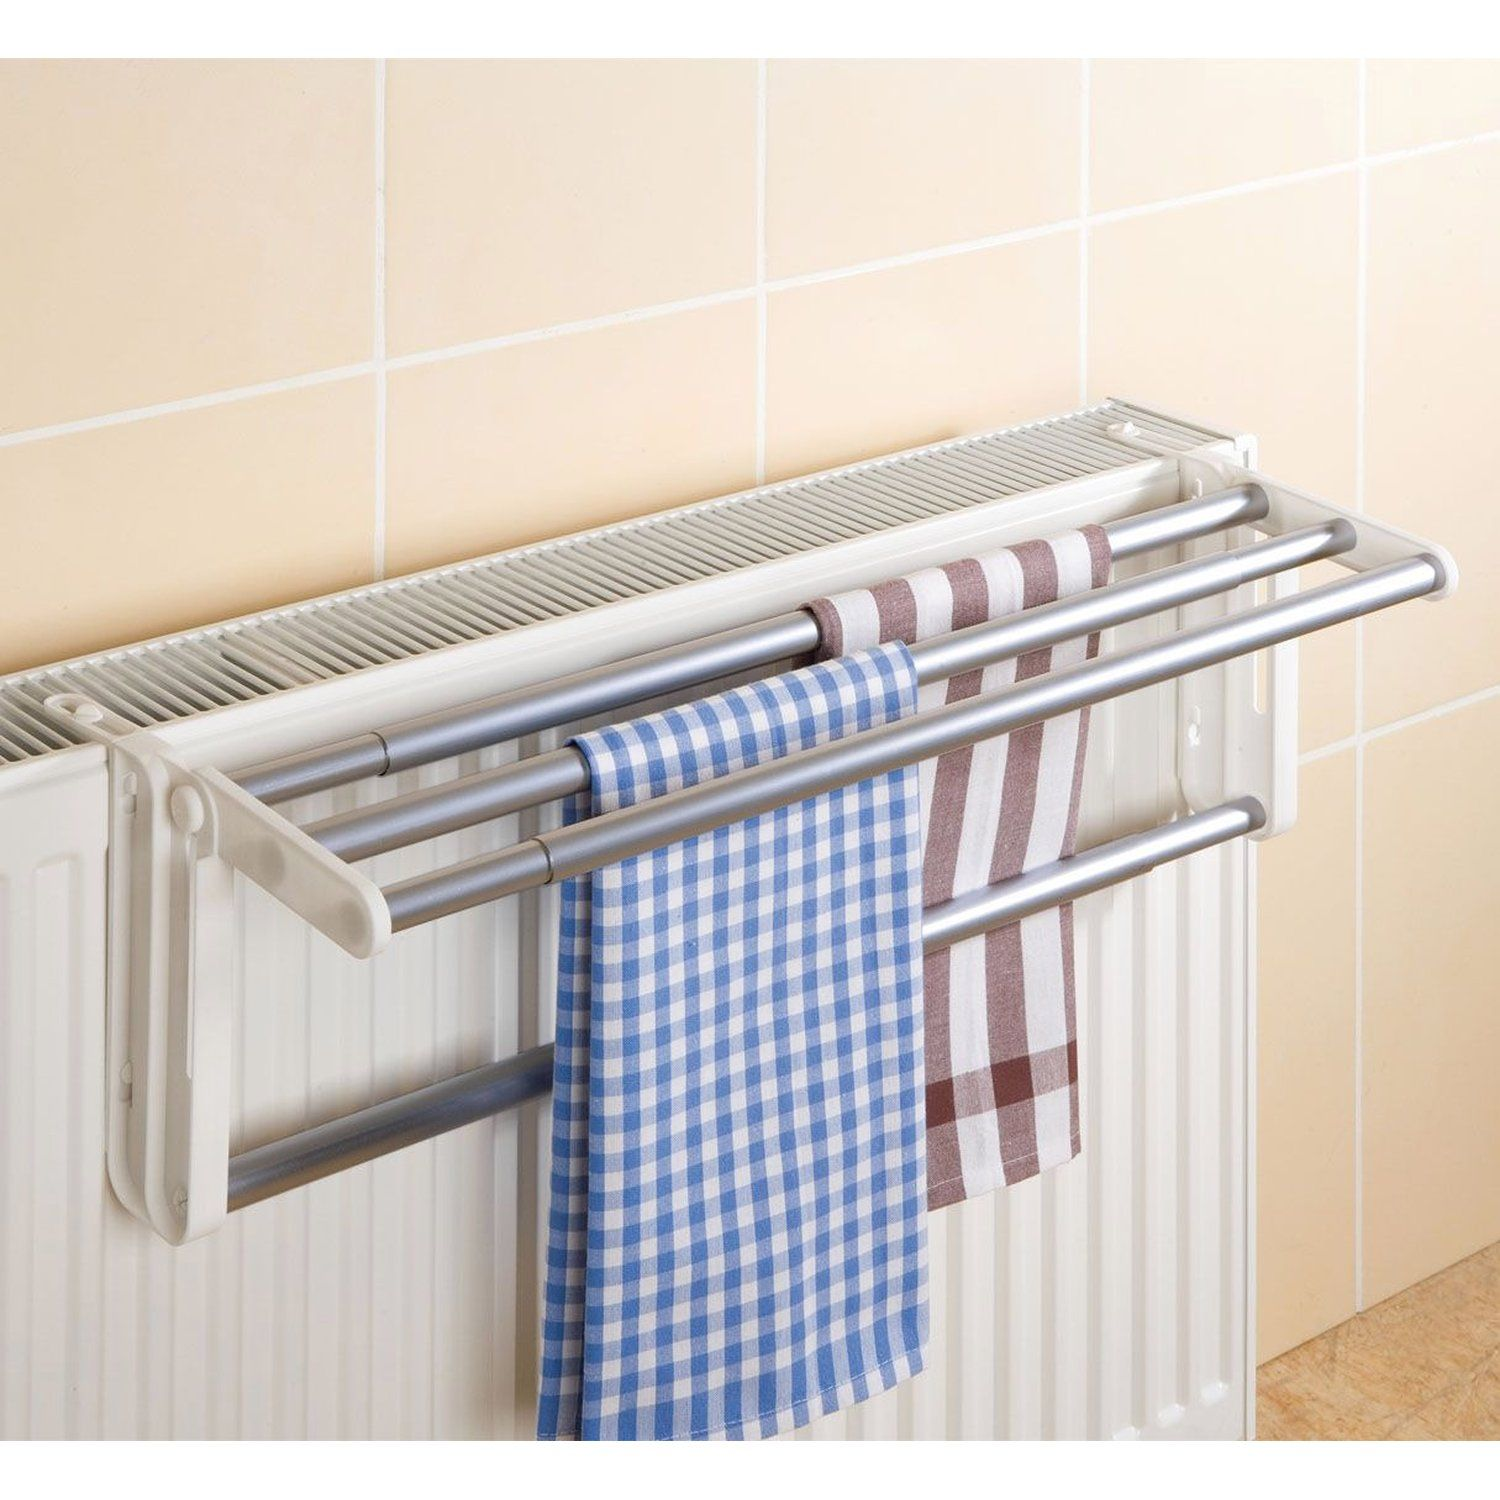 Wenko Raumspartrockner Practico Bathroom Towel